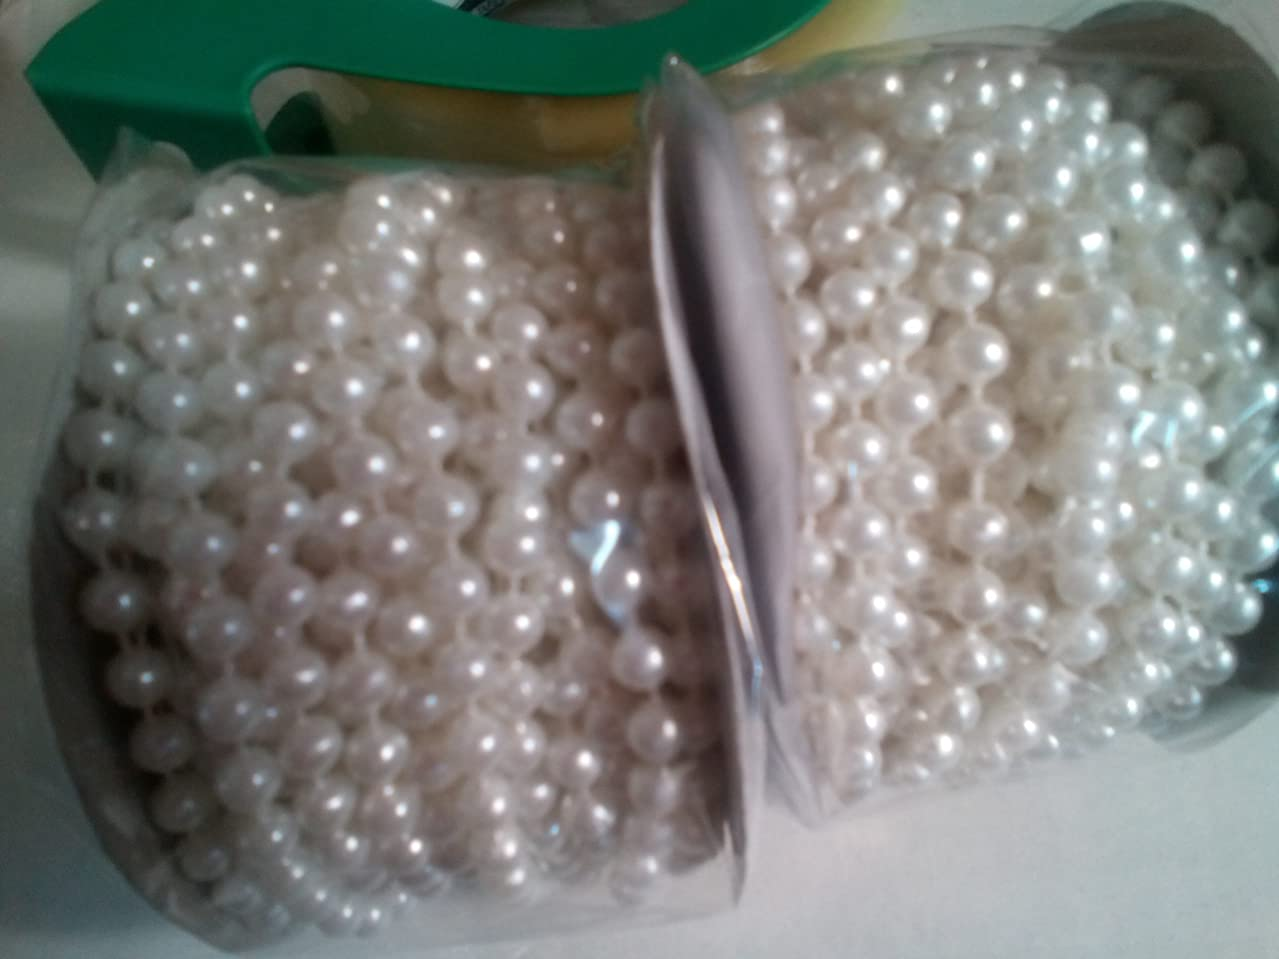 6mm Faux Pearl Plastic Beads on a String Roll -white, 2 rolls, 12 yards per roll